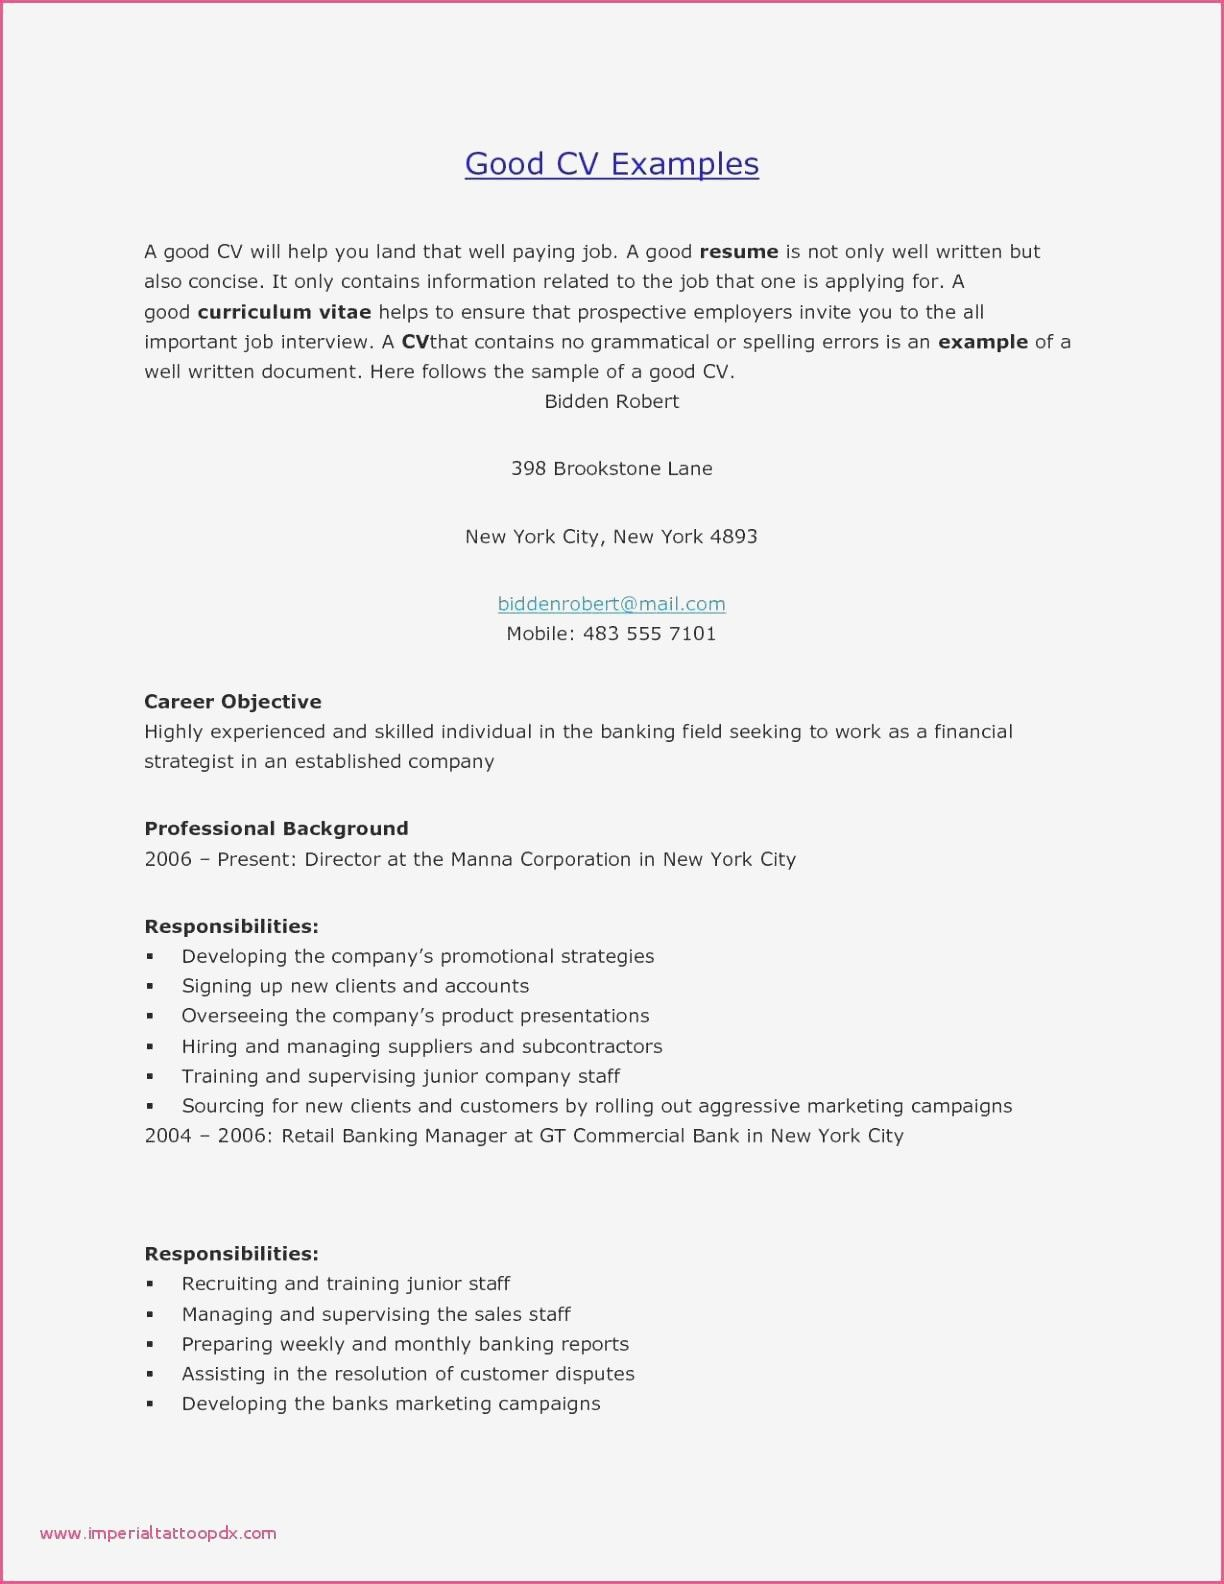 Cover Letter (Professional)